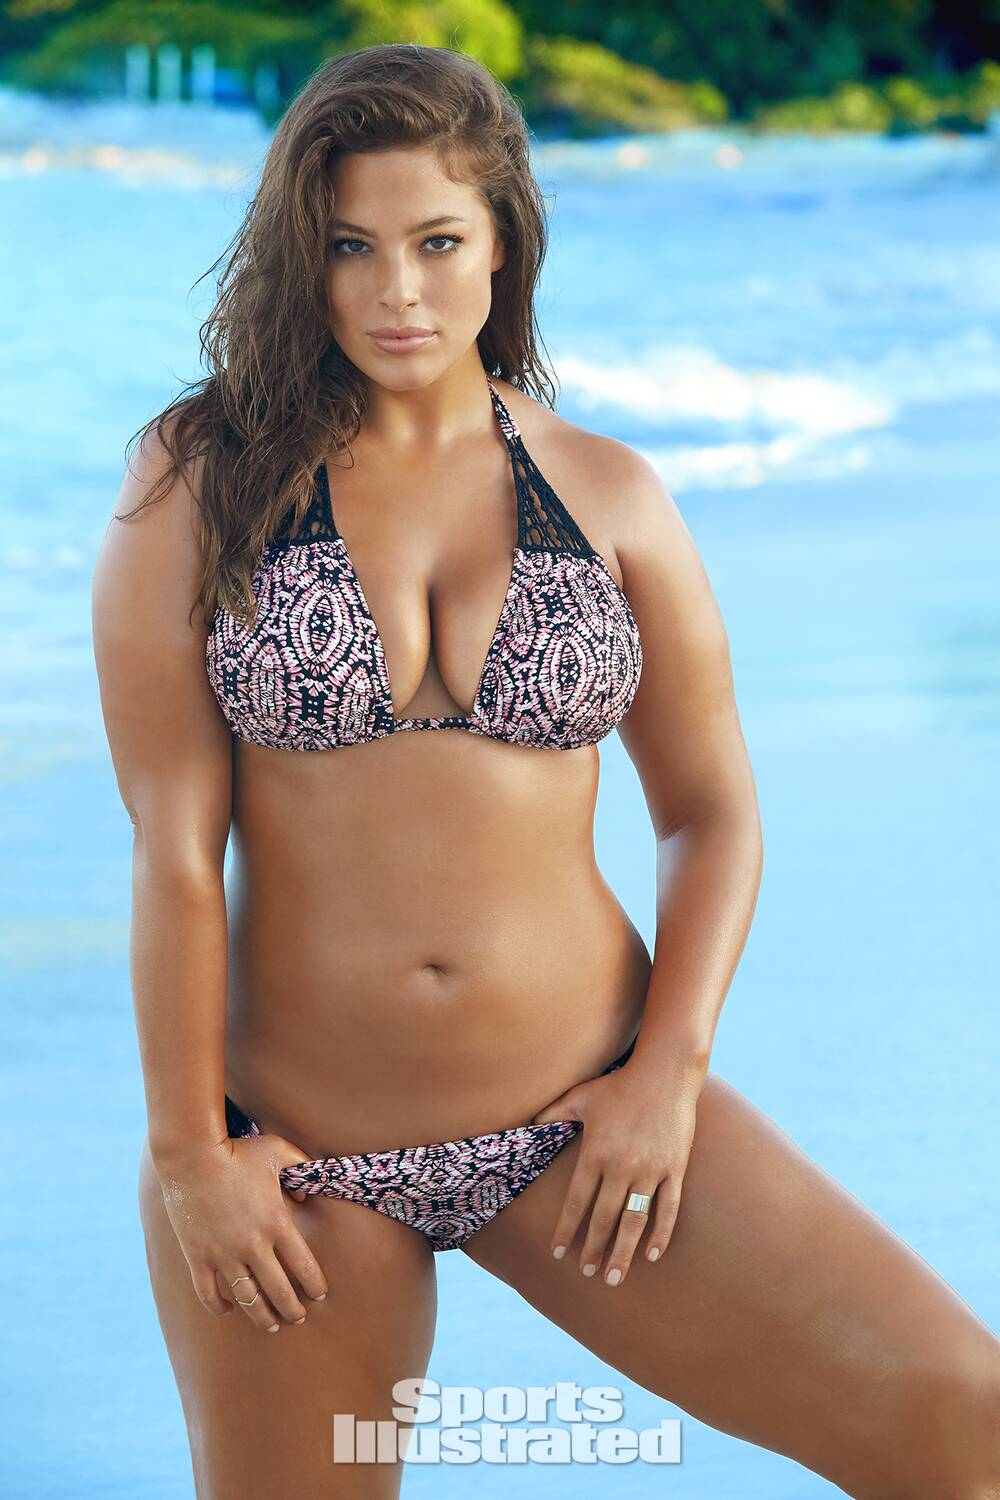 f7c197c3e7a3 Ashley Graham 2016 swimsuit photo gallery | SI.com